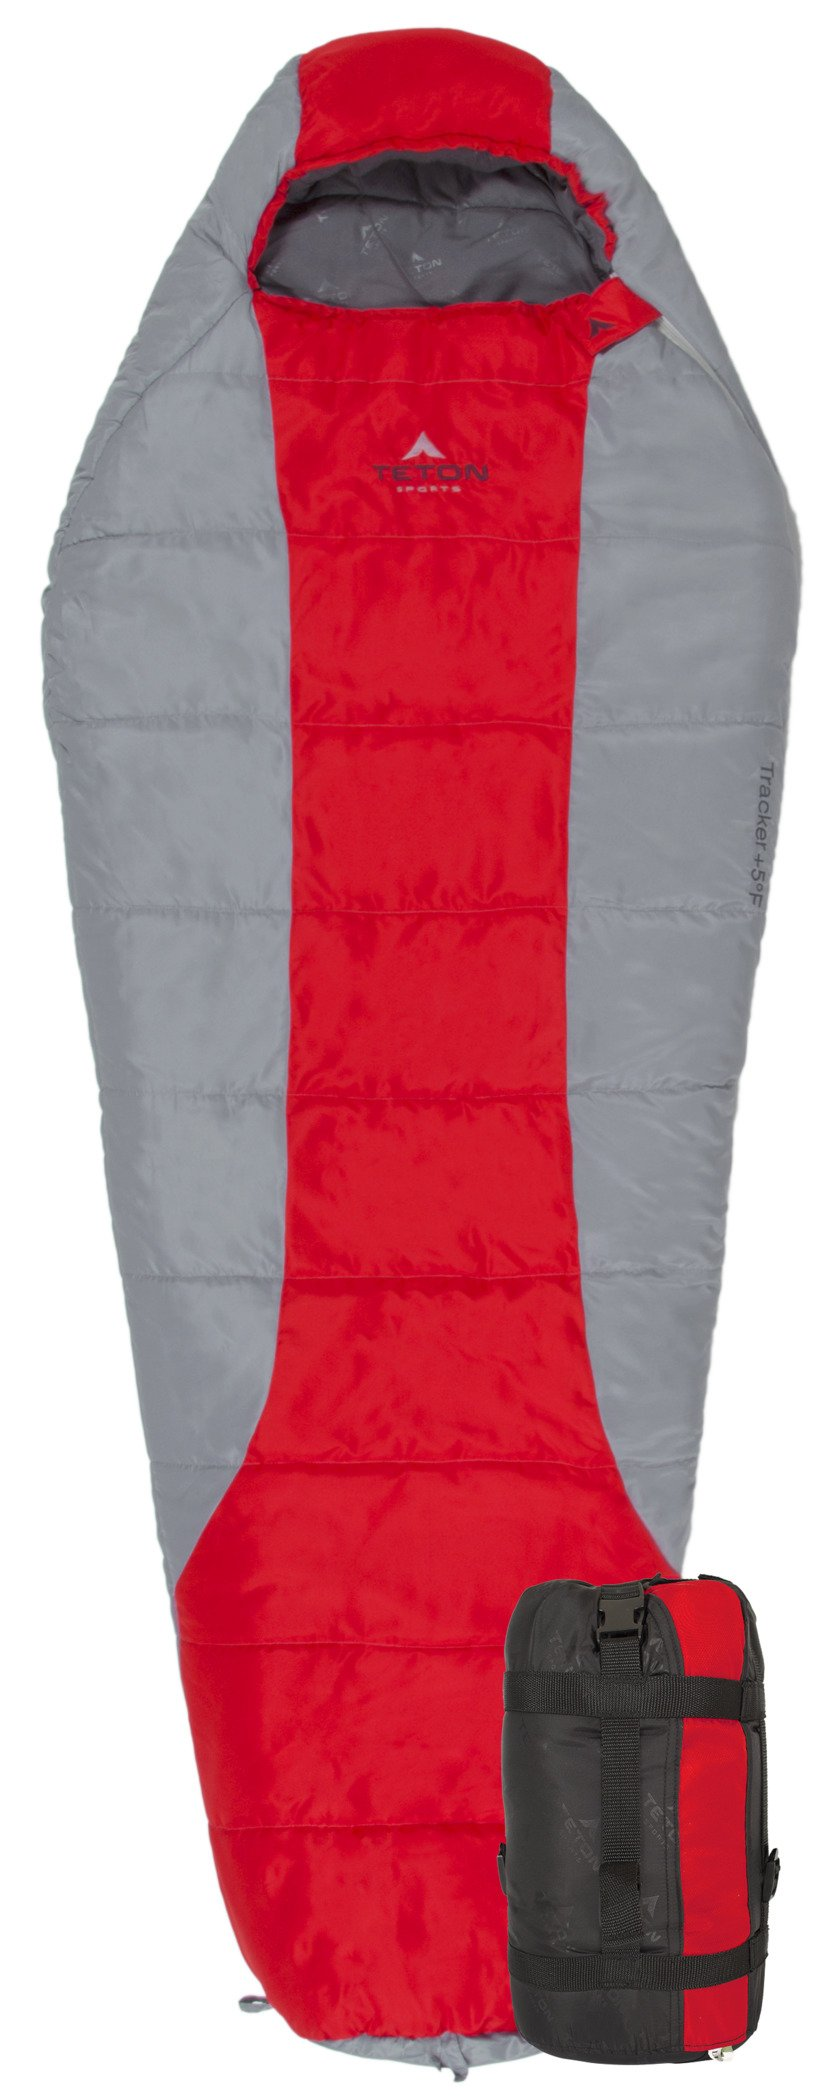 TETON Sports Tracker Ultralight Mummy Sleeping Bag; Lightweight Backpacking Sleeping Bag for Hiking and Camping Outdoors; Sleep Anywhere; Compression Sack Included; Never Roll Your Sleeping Bag Again 3